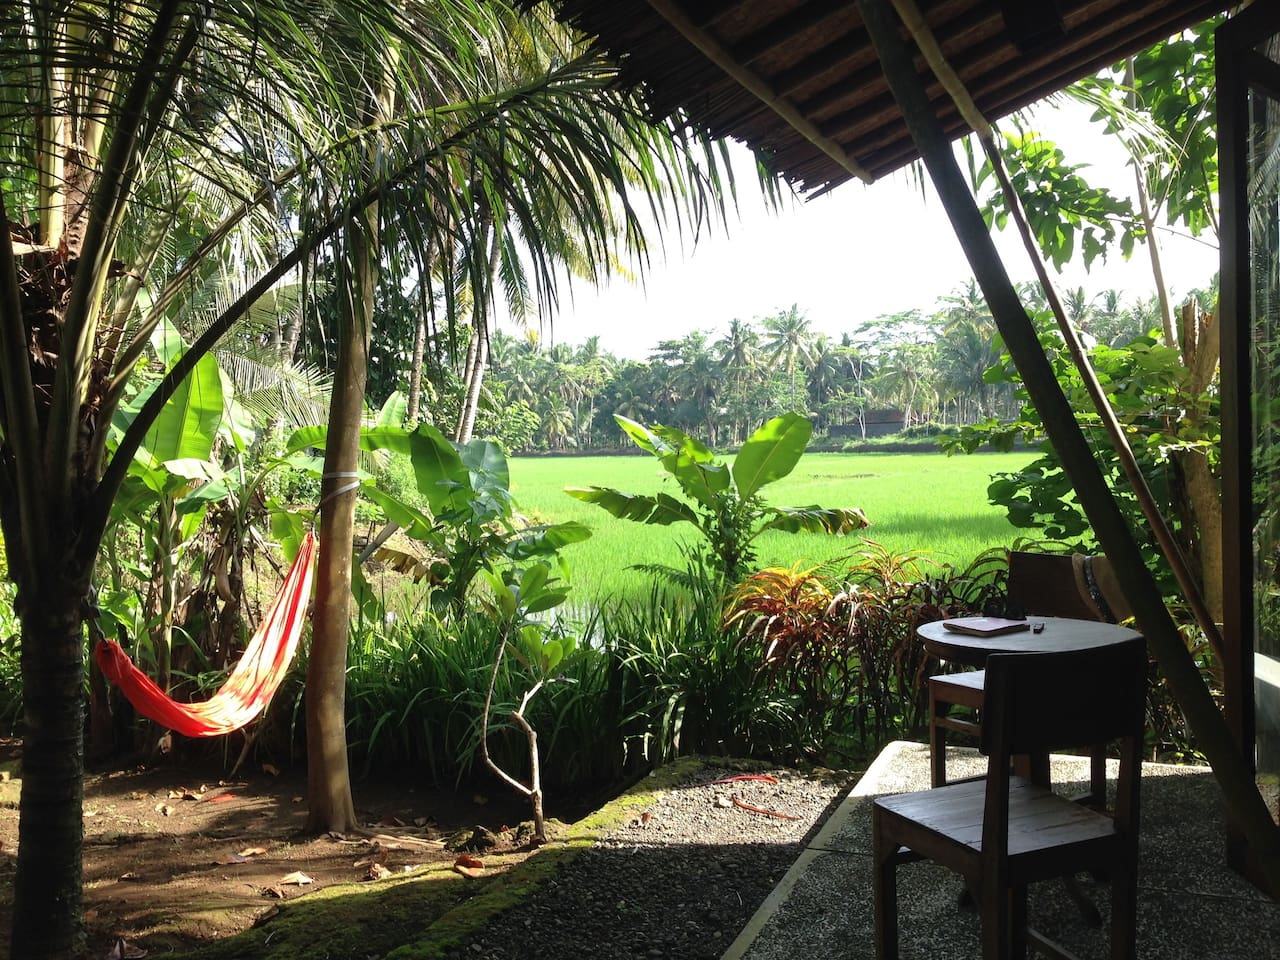 hammock by the ricefields